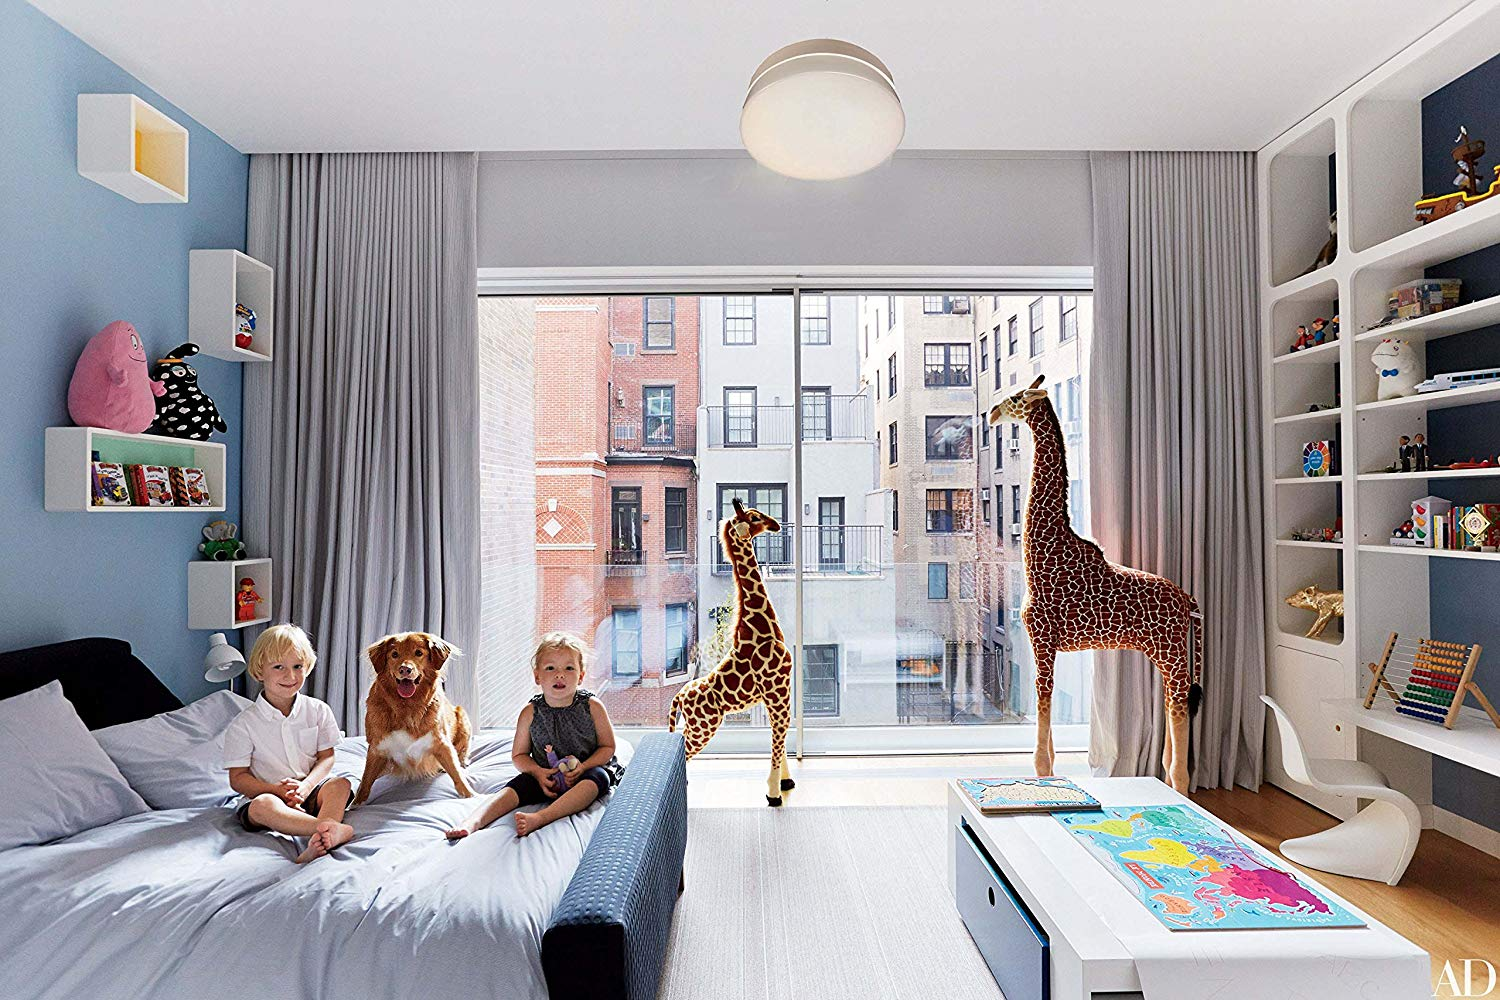 How to Design a Kids Room that Fosters Creativity